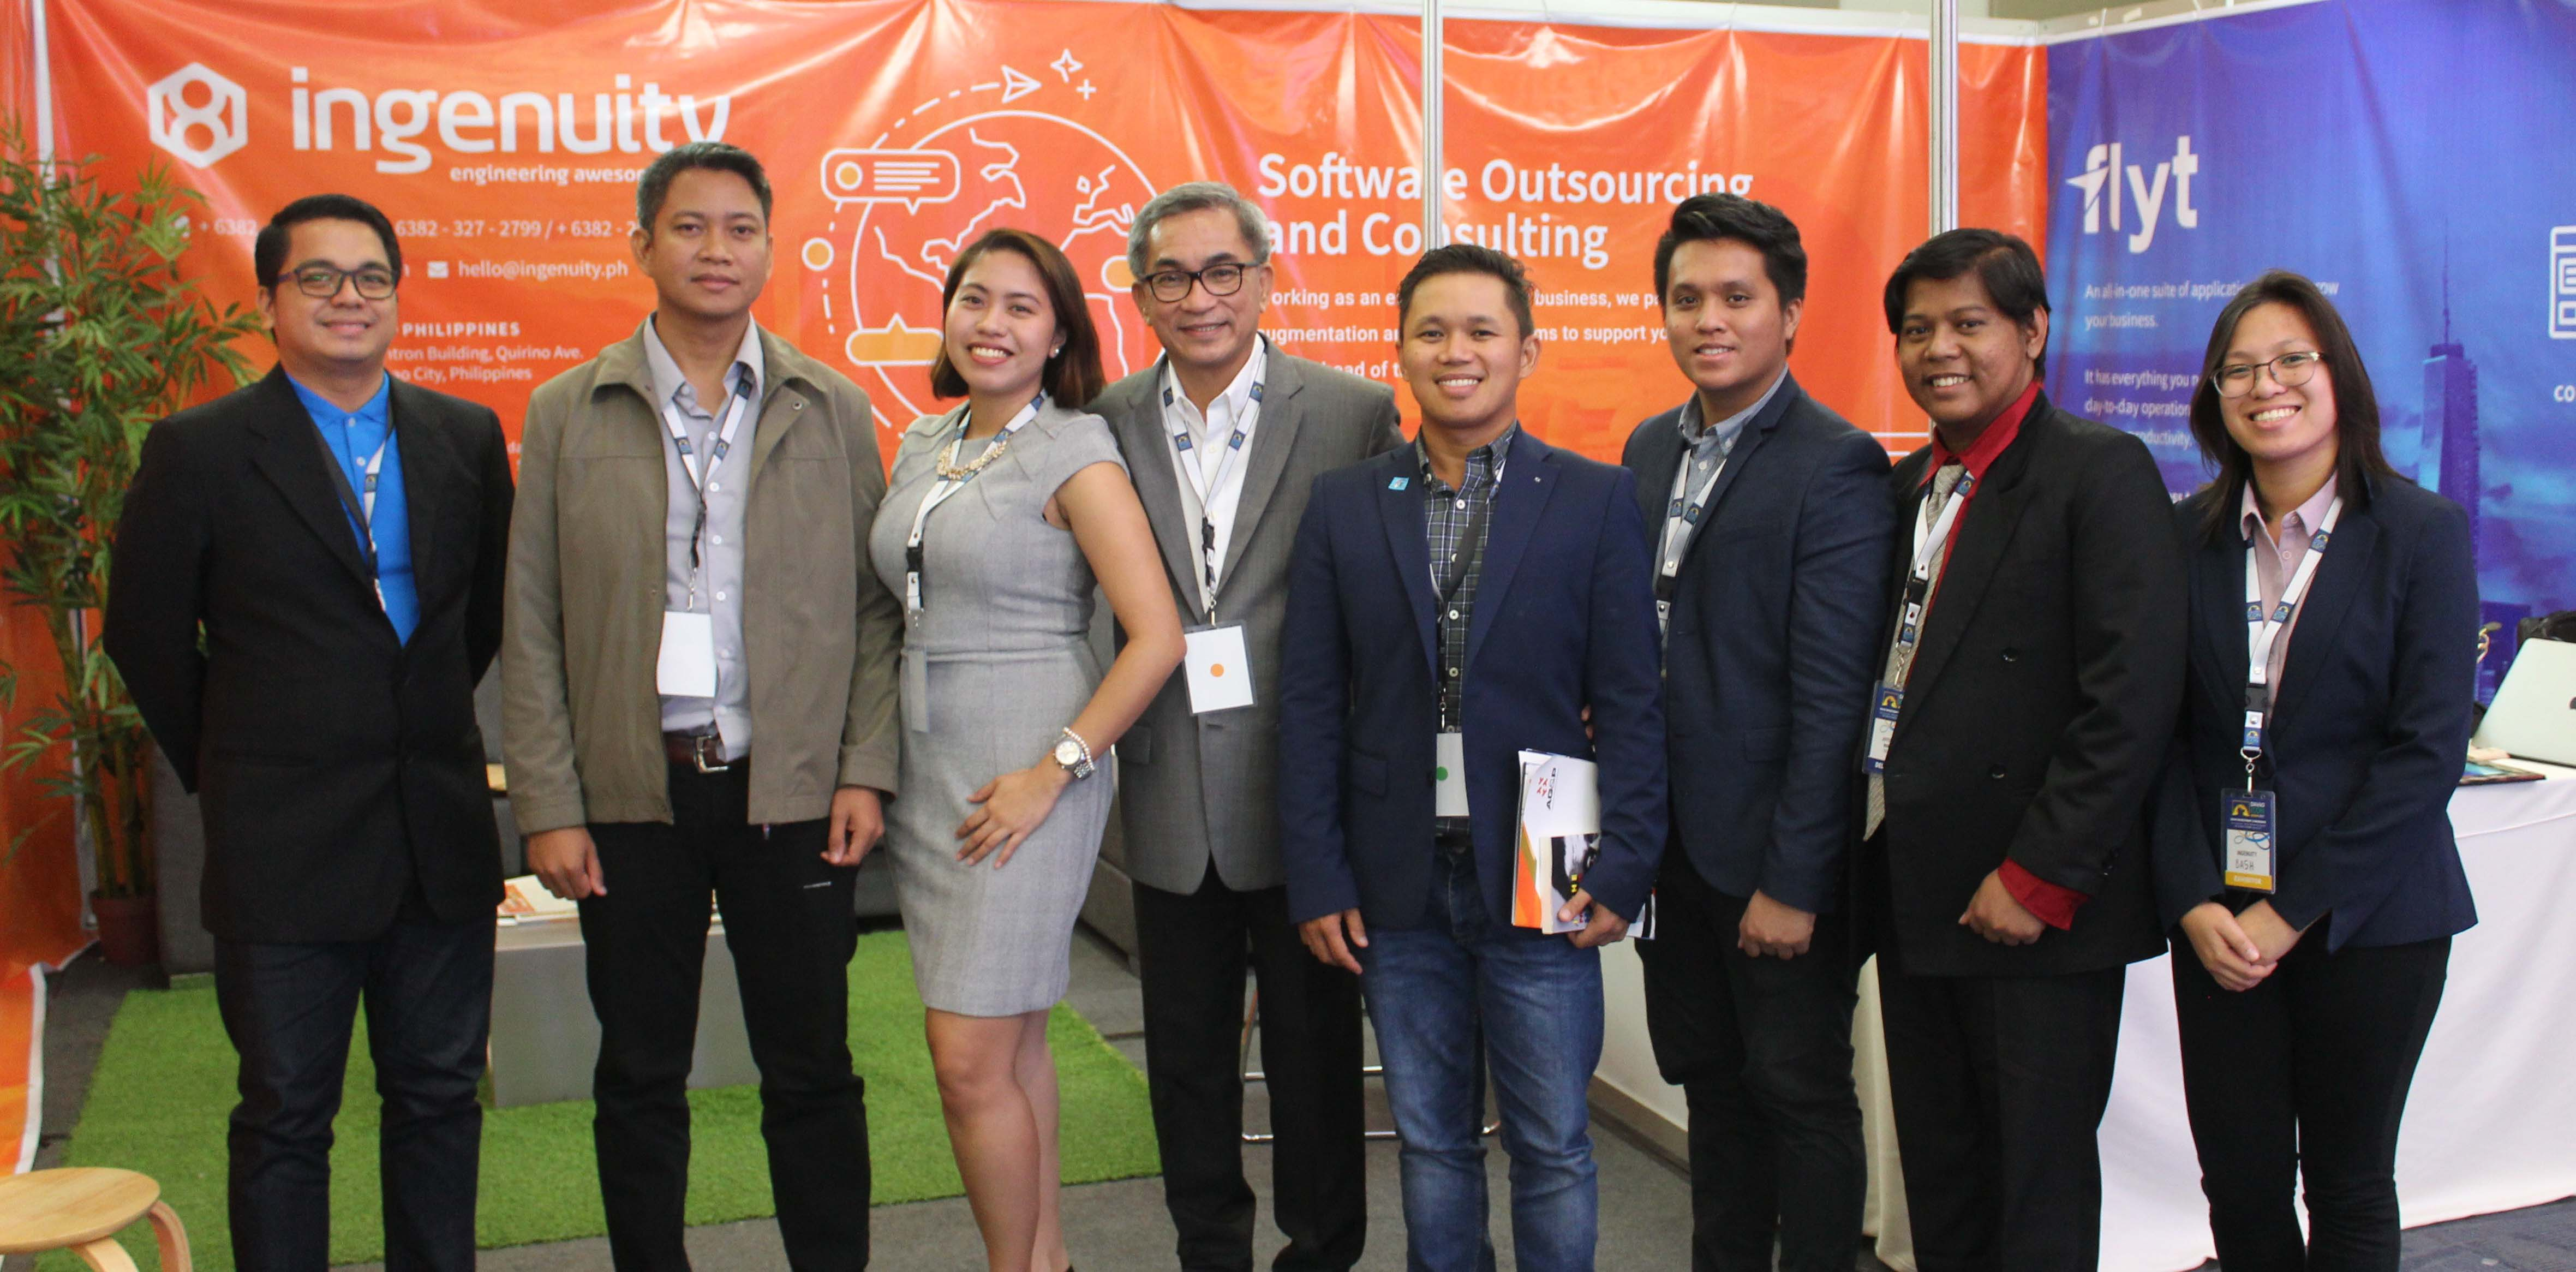 Ingenuity and Flyt Team together with Mr. Arturo Millan, 2017 Davao Icon Chairman